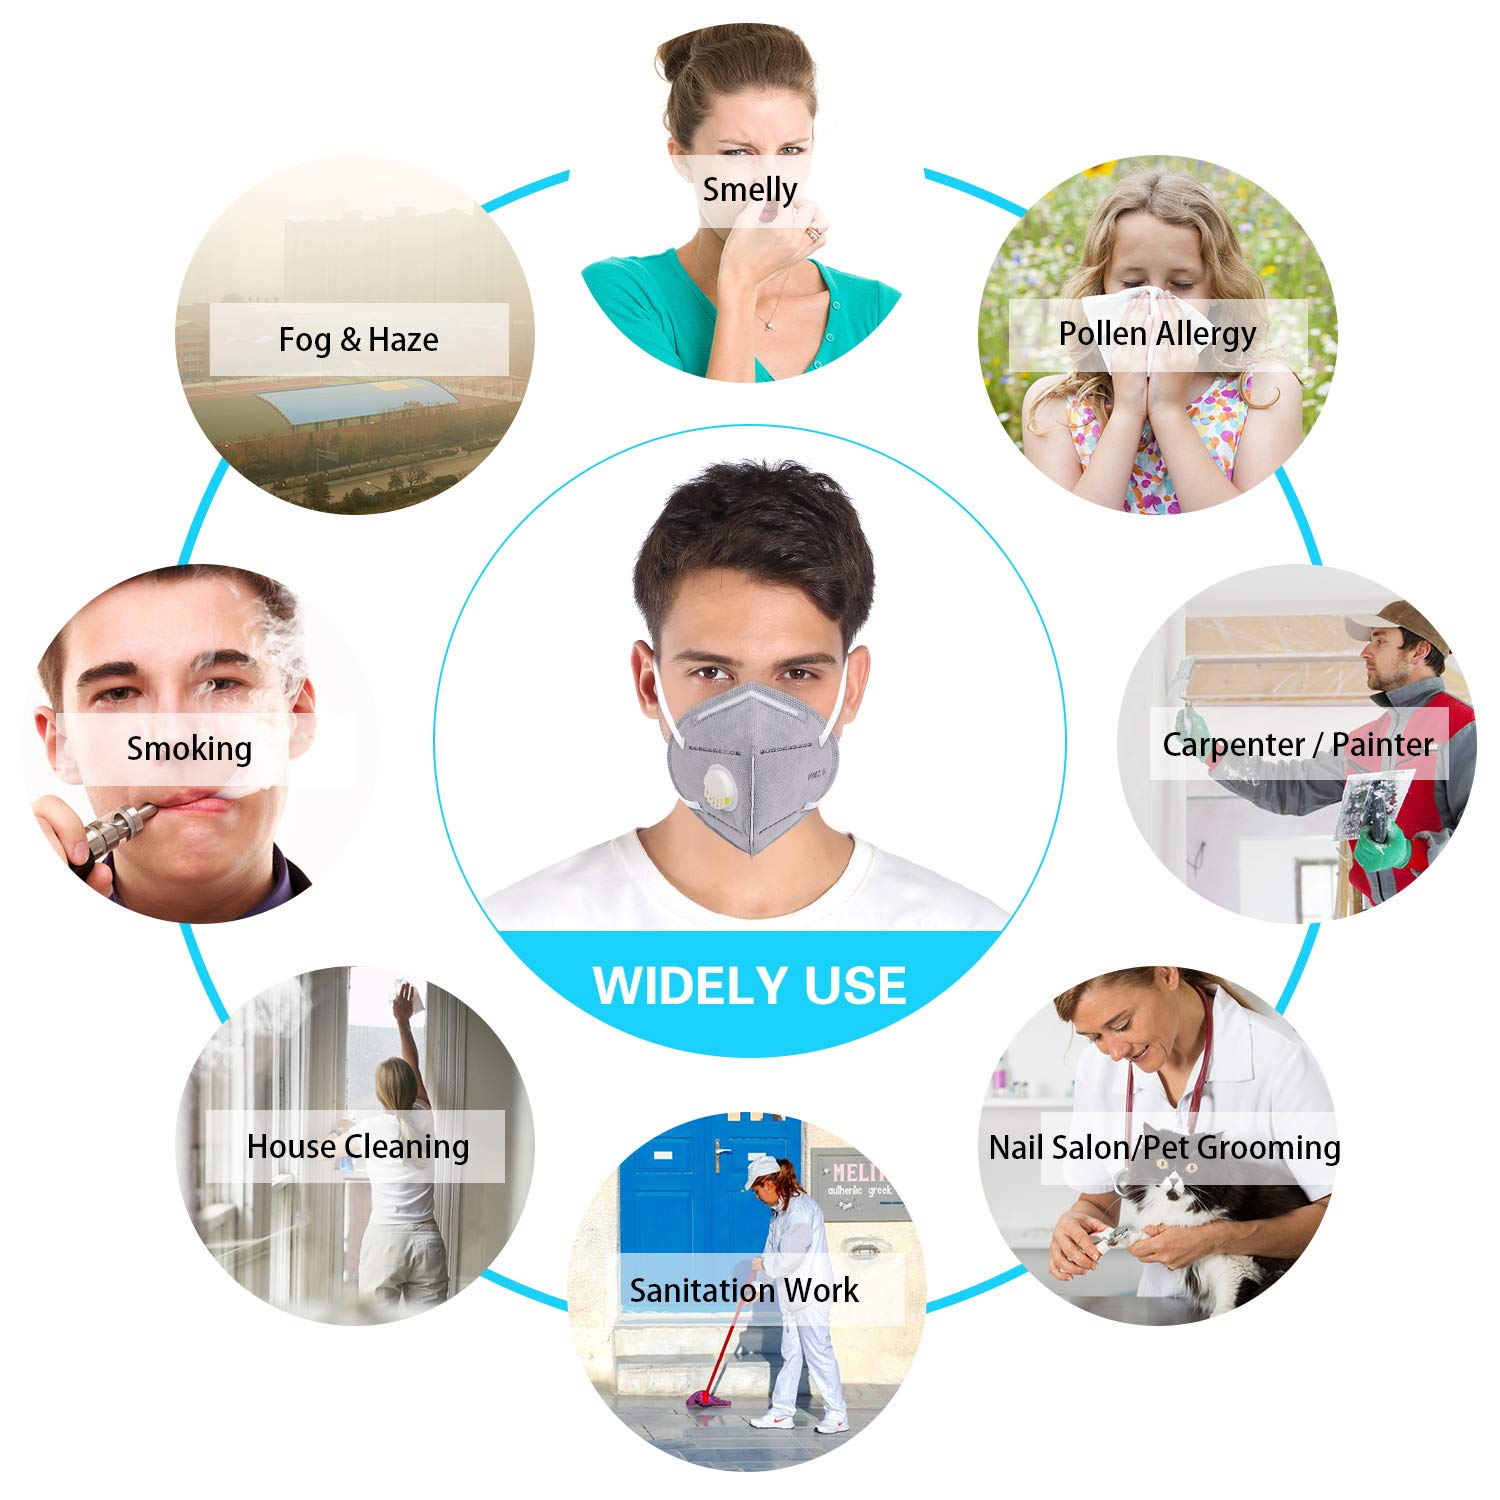 Disposable Dust Mask 20-Pack,ink-topoint Anti Dust Face Masks FFP2 with Filter/Respirator,Adjustable Nosepiece Unisex Fold Flat Dust Masks,Mouth Mask Anti Pollution for Construction,Smoke,Traffic Dust